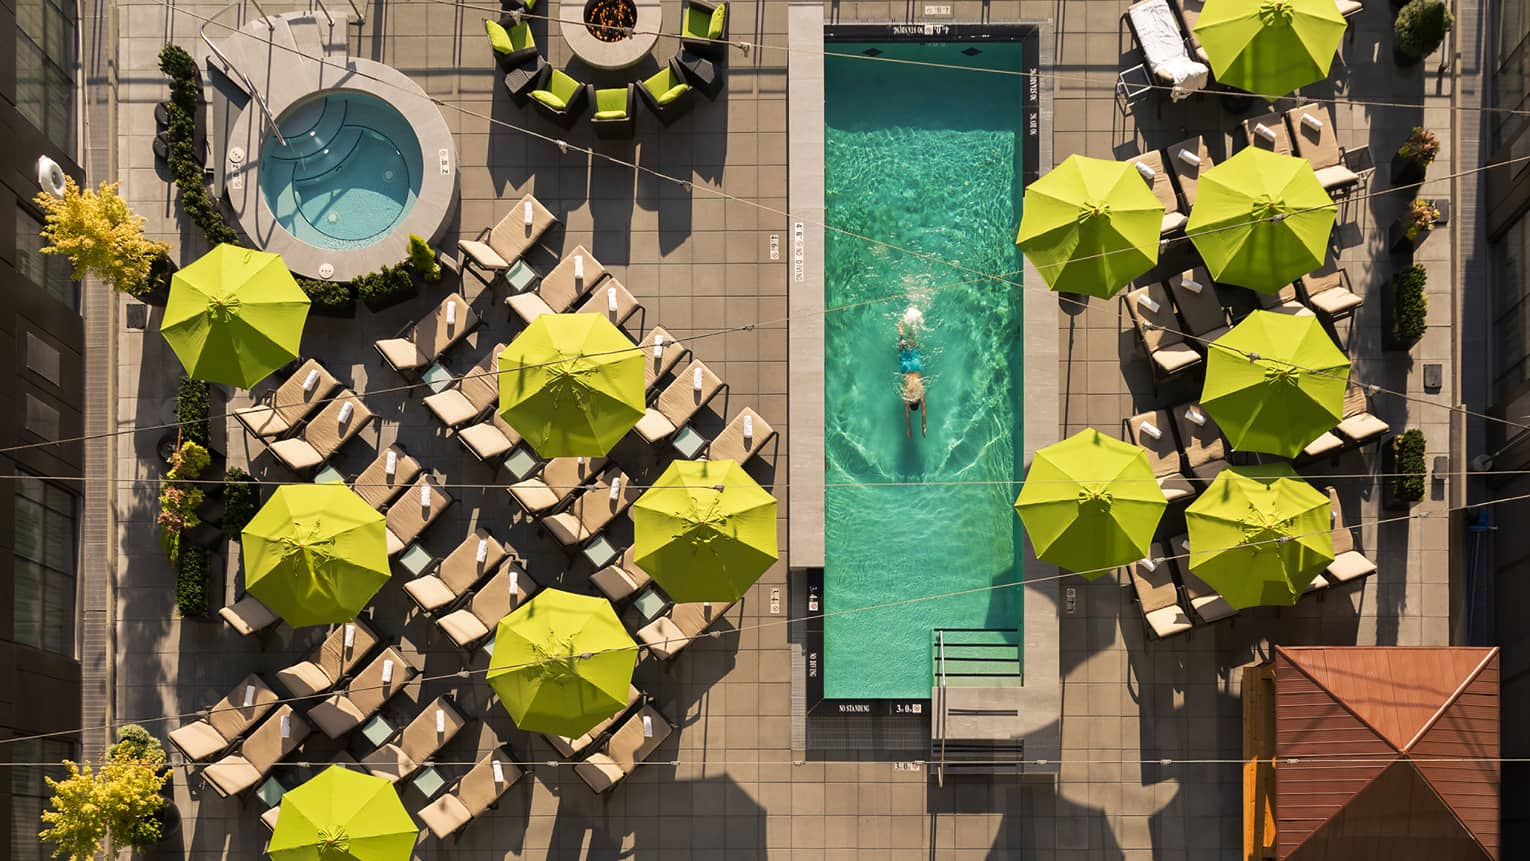 Aerial view of deck with yellow patio umbrellas, man swimming laps in long rectangular pool